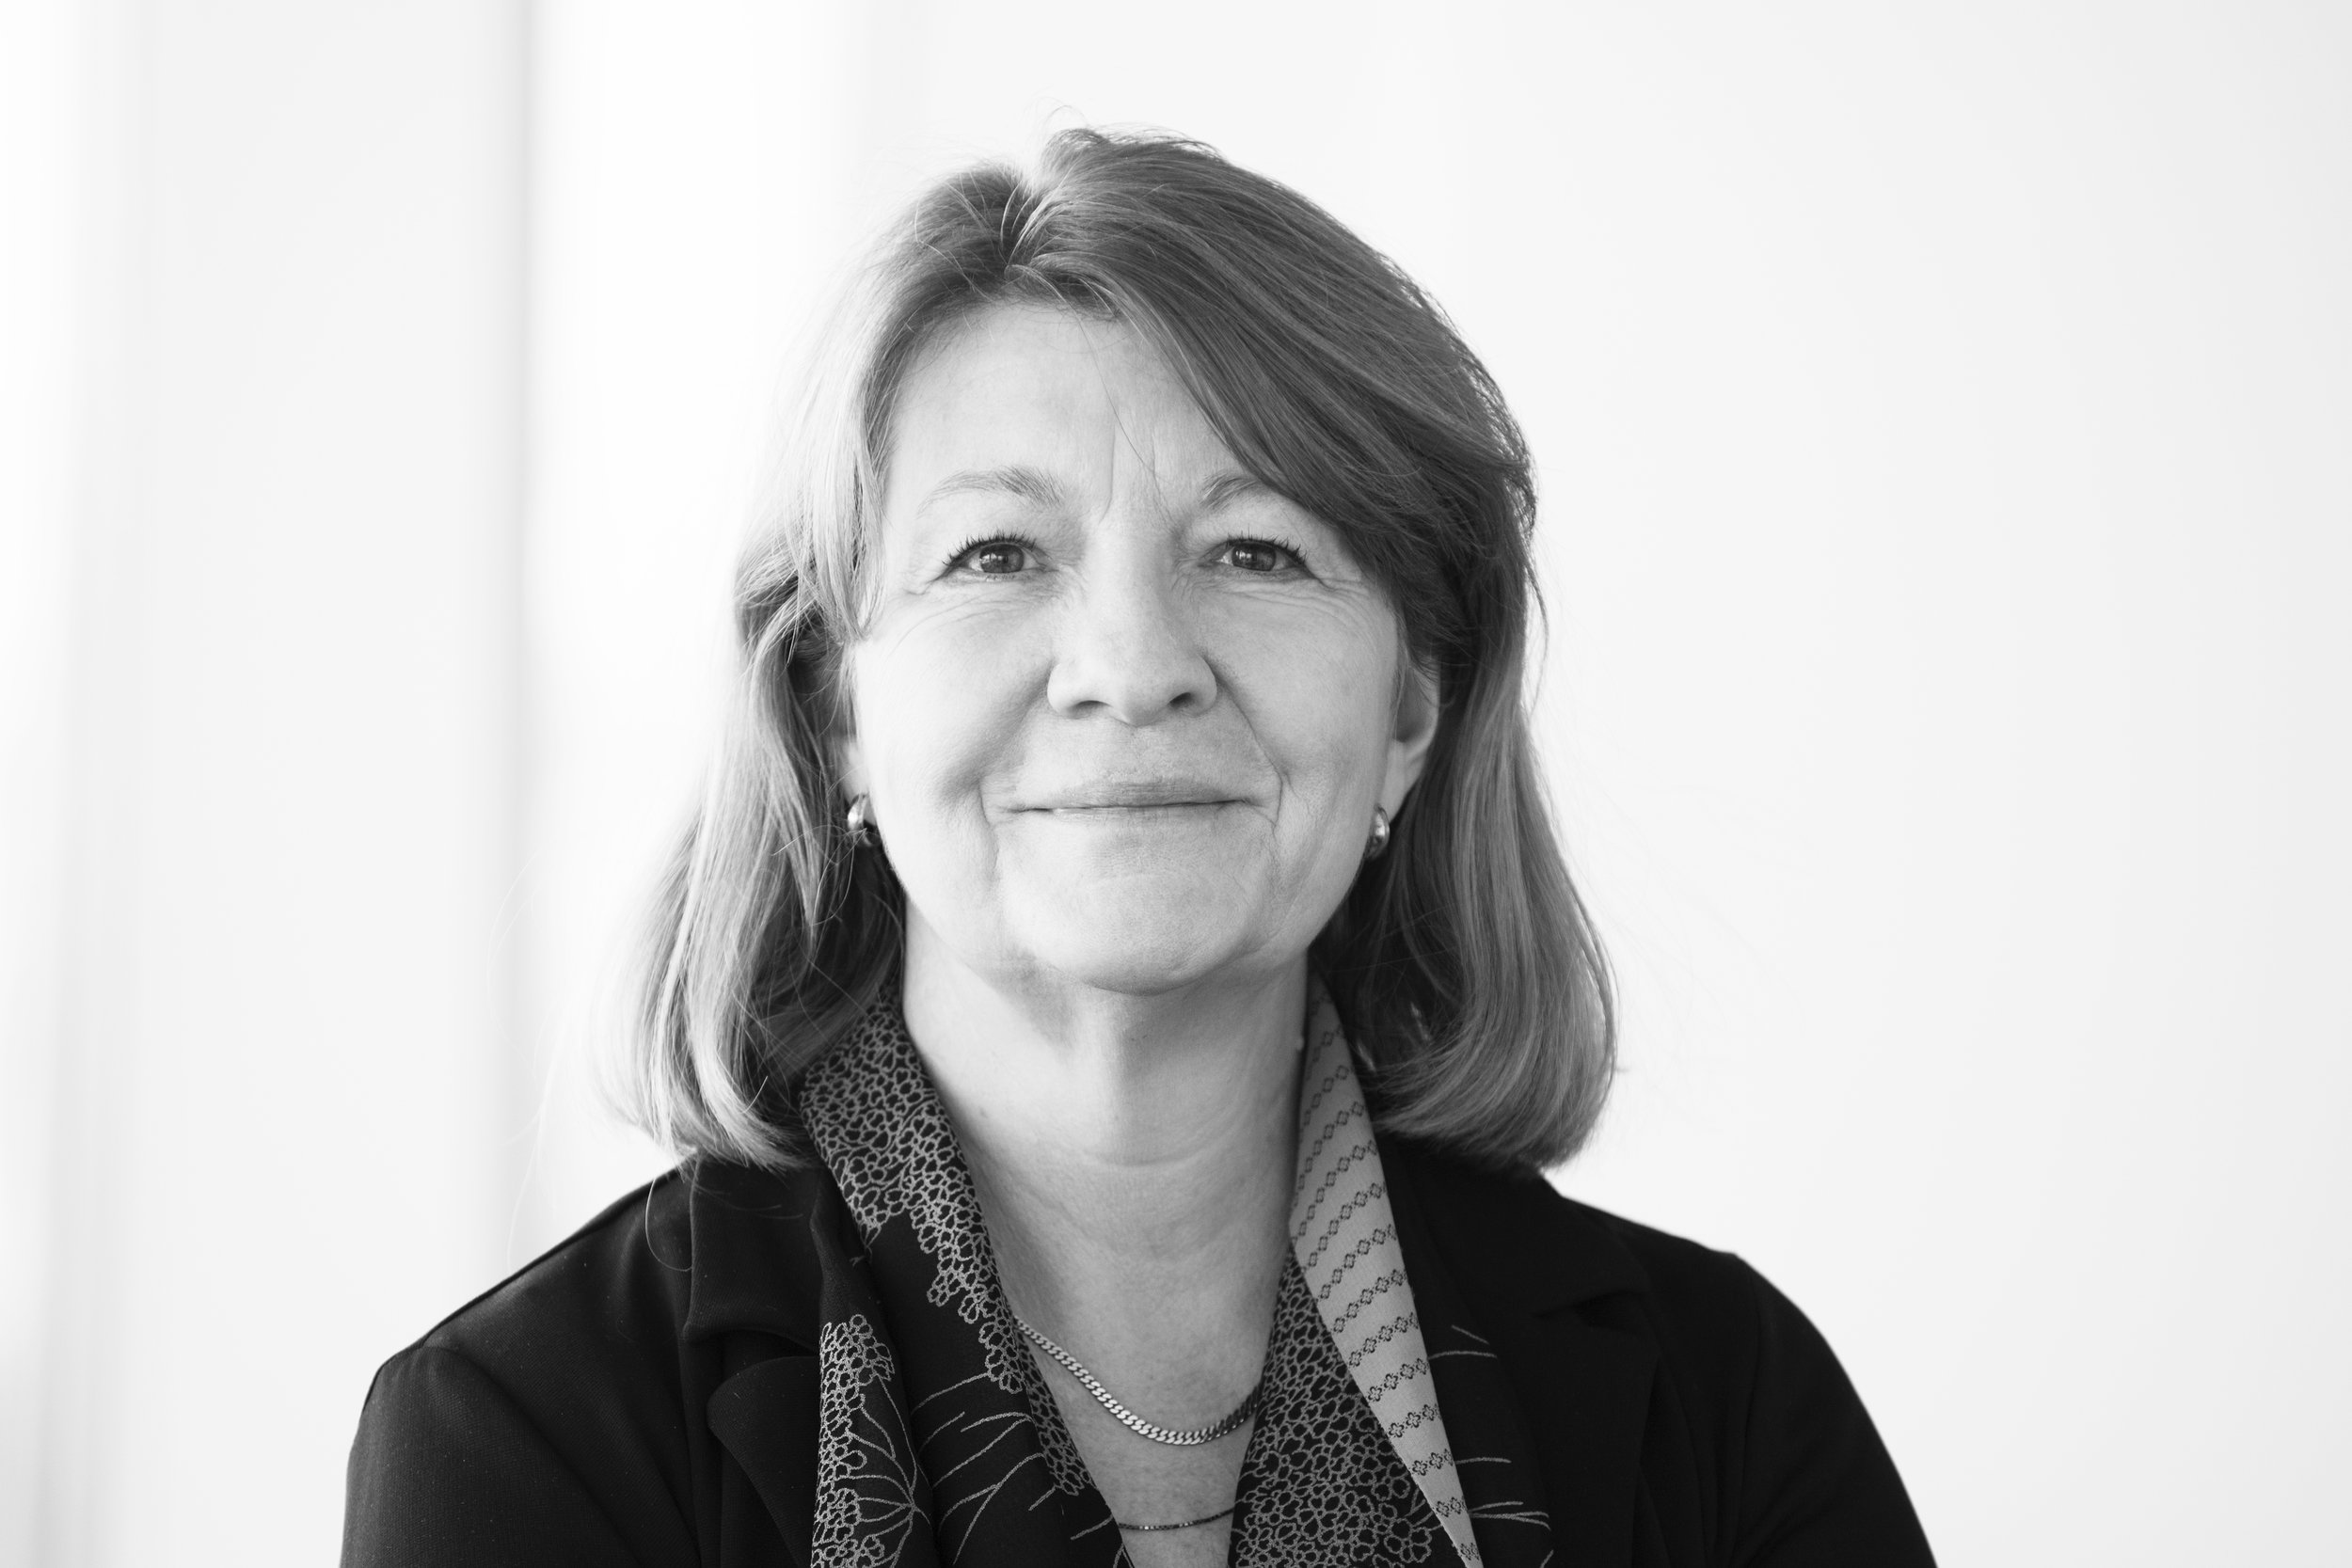 Ann - Ann Johansson /Business AssistantAnn has been with Nordic Interim since 2013 and today works out of Italy. She has previously been a Partner Assistant at McKinsey & Company, White & Case and Odgers Berndtson.+46 (0)70 493 64 54/ann.johansson@nordicinterim.com